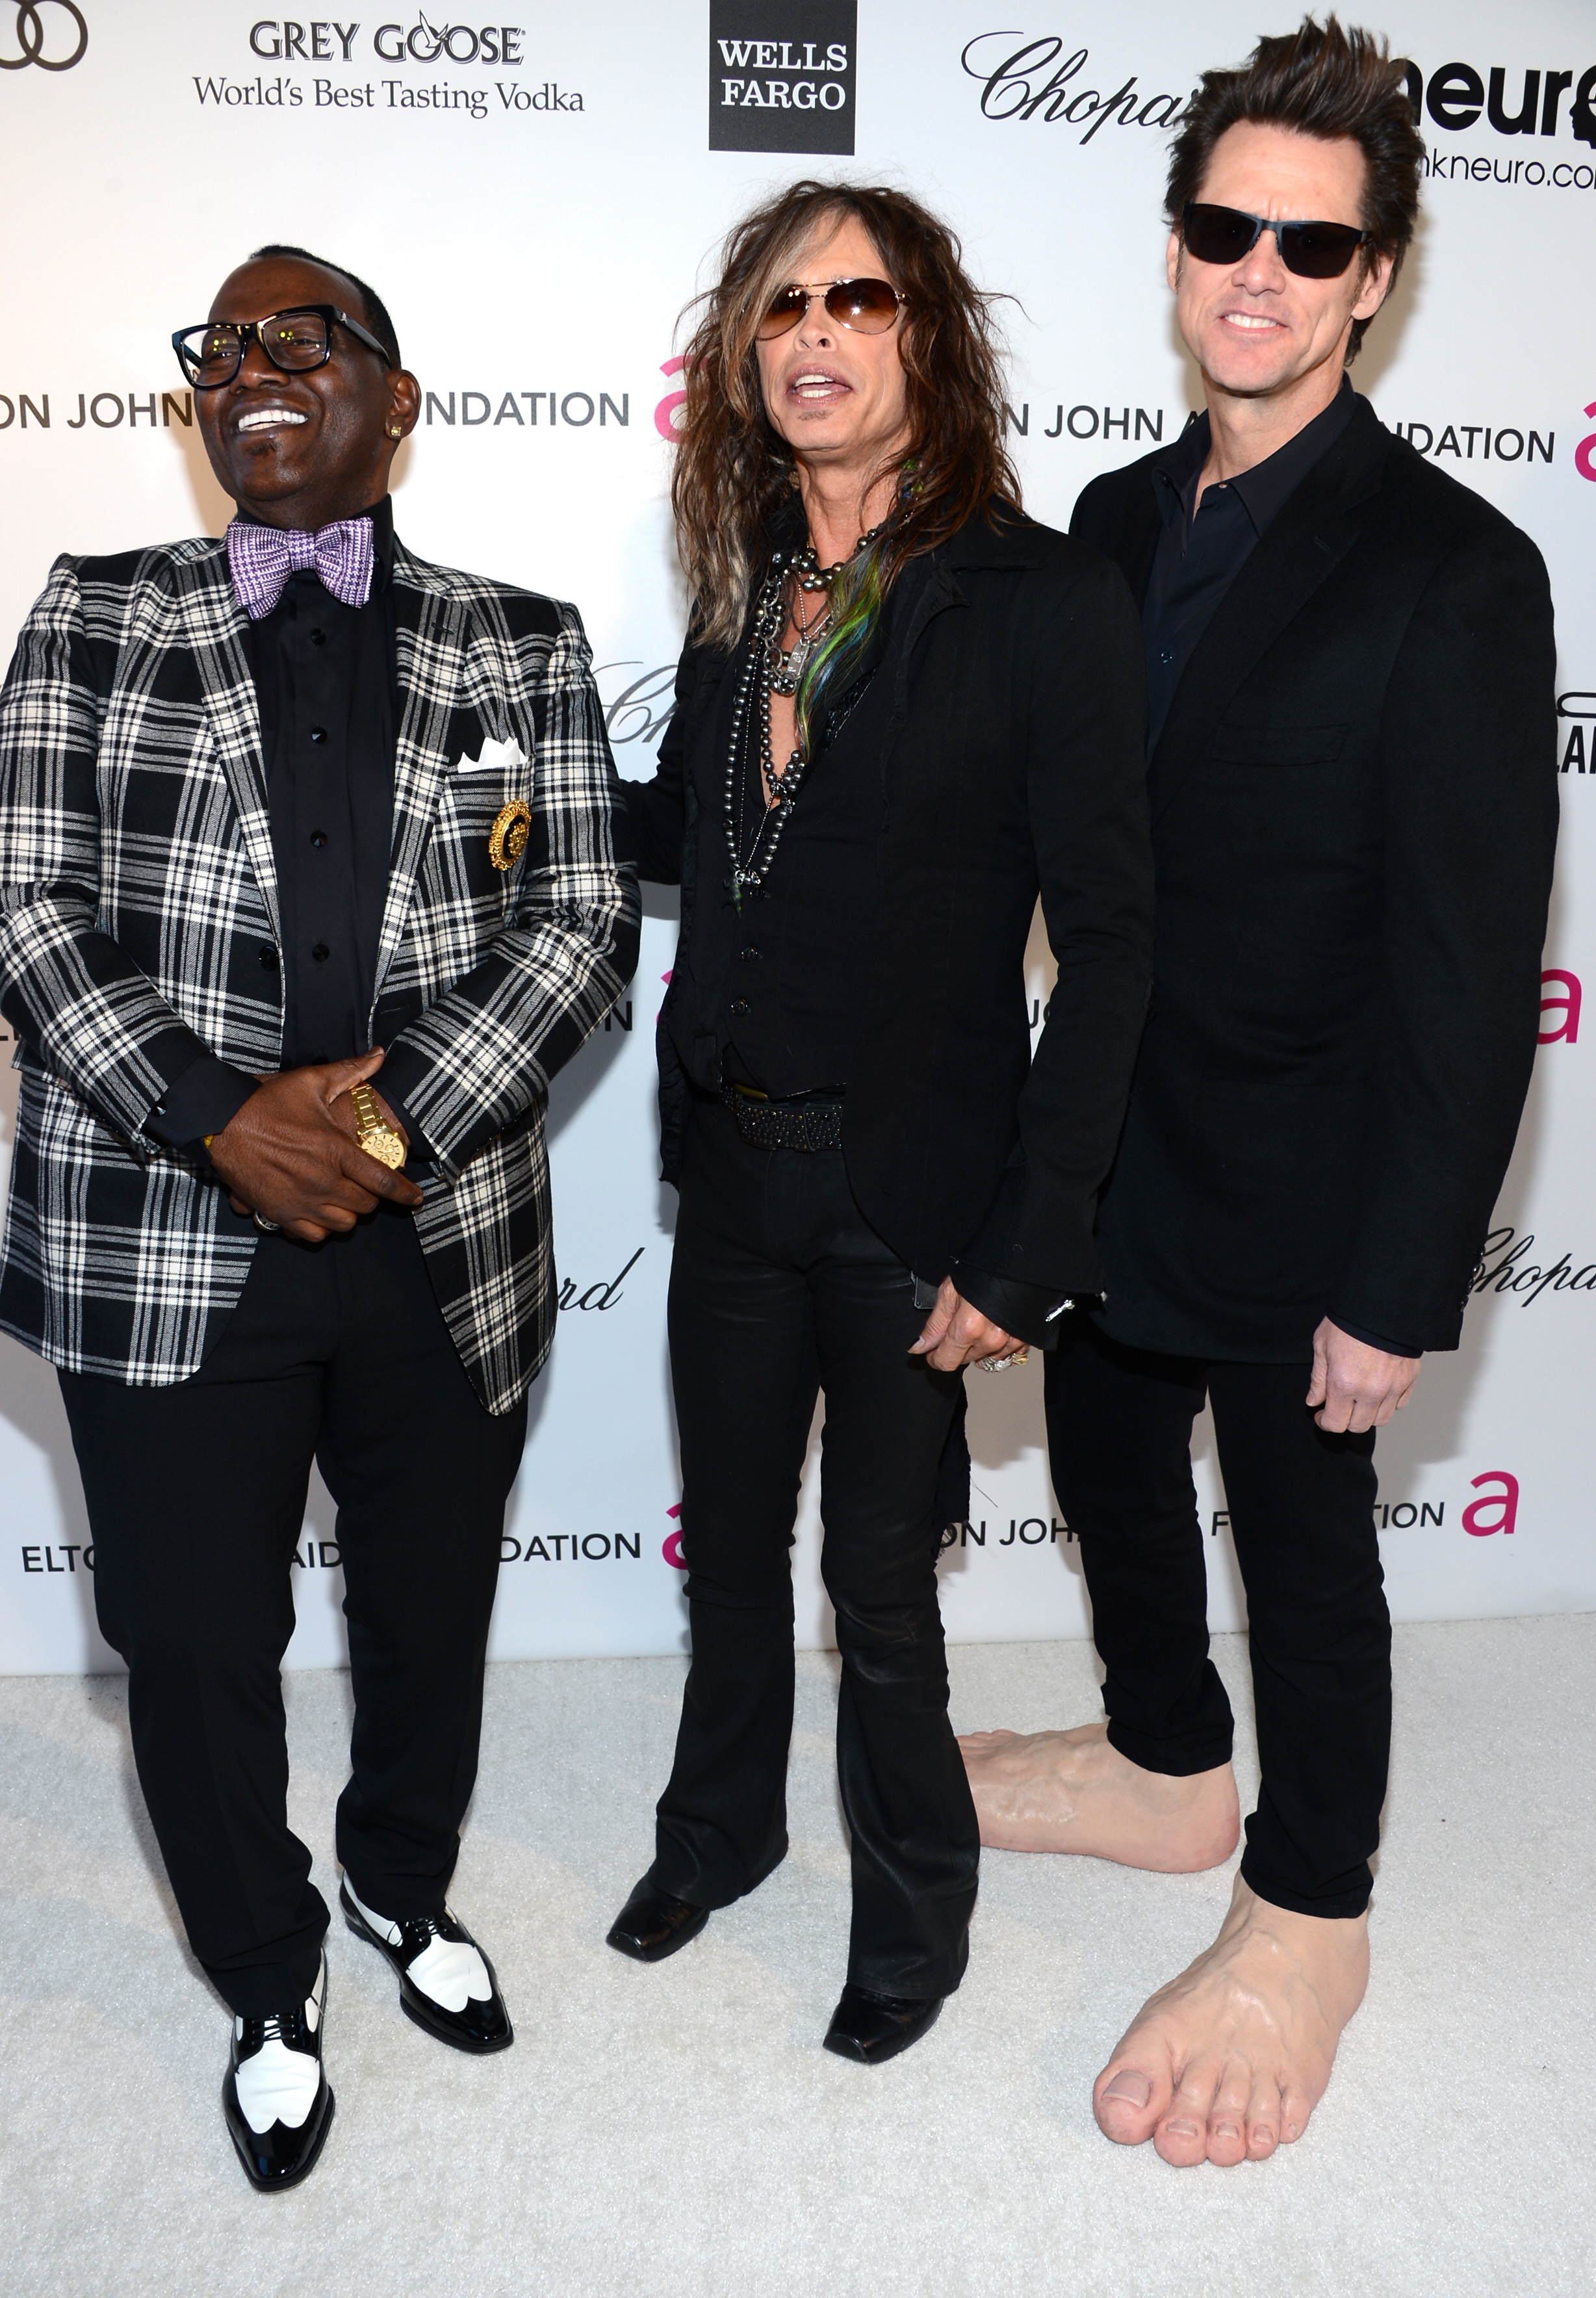 Steven Tyler, Randy Jackson, and Jim Carrey all had a laugh together as they arrived at Elton John's viewing party.